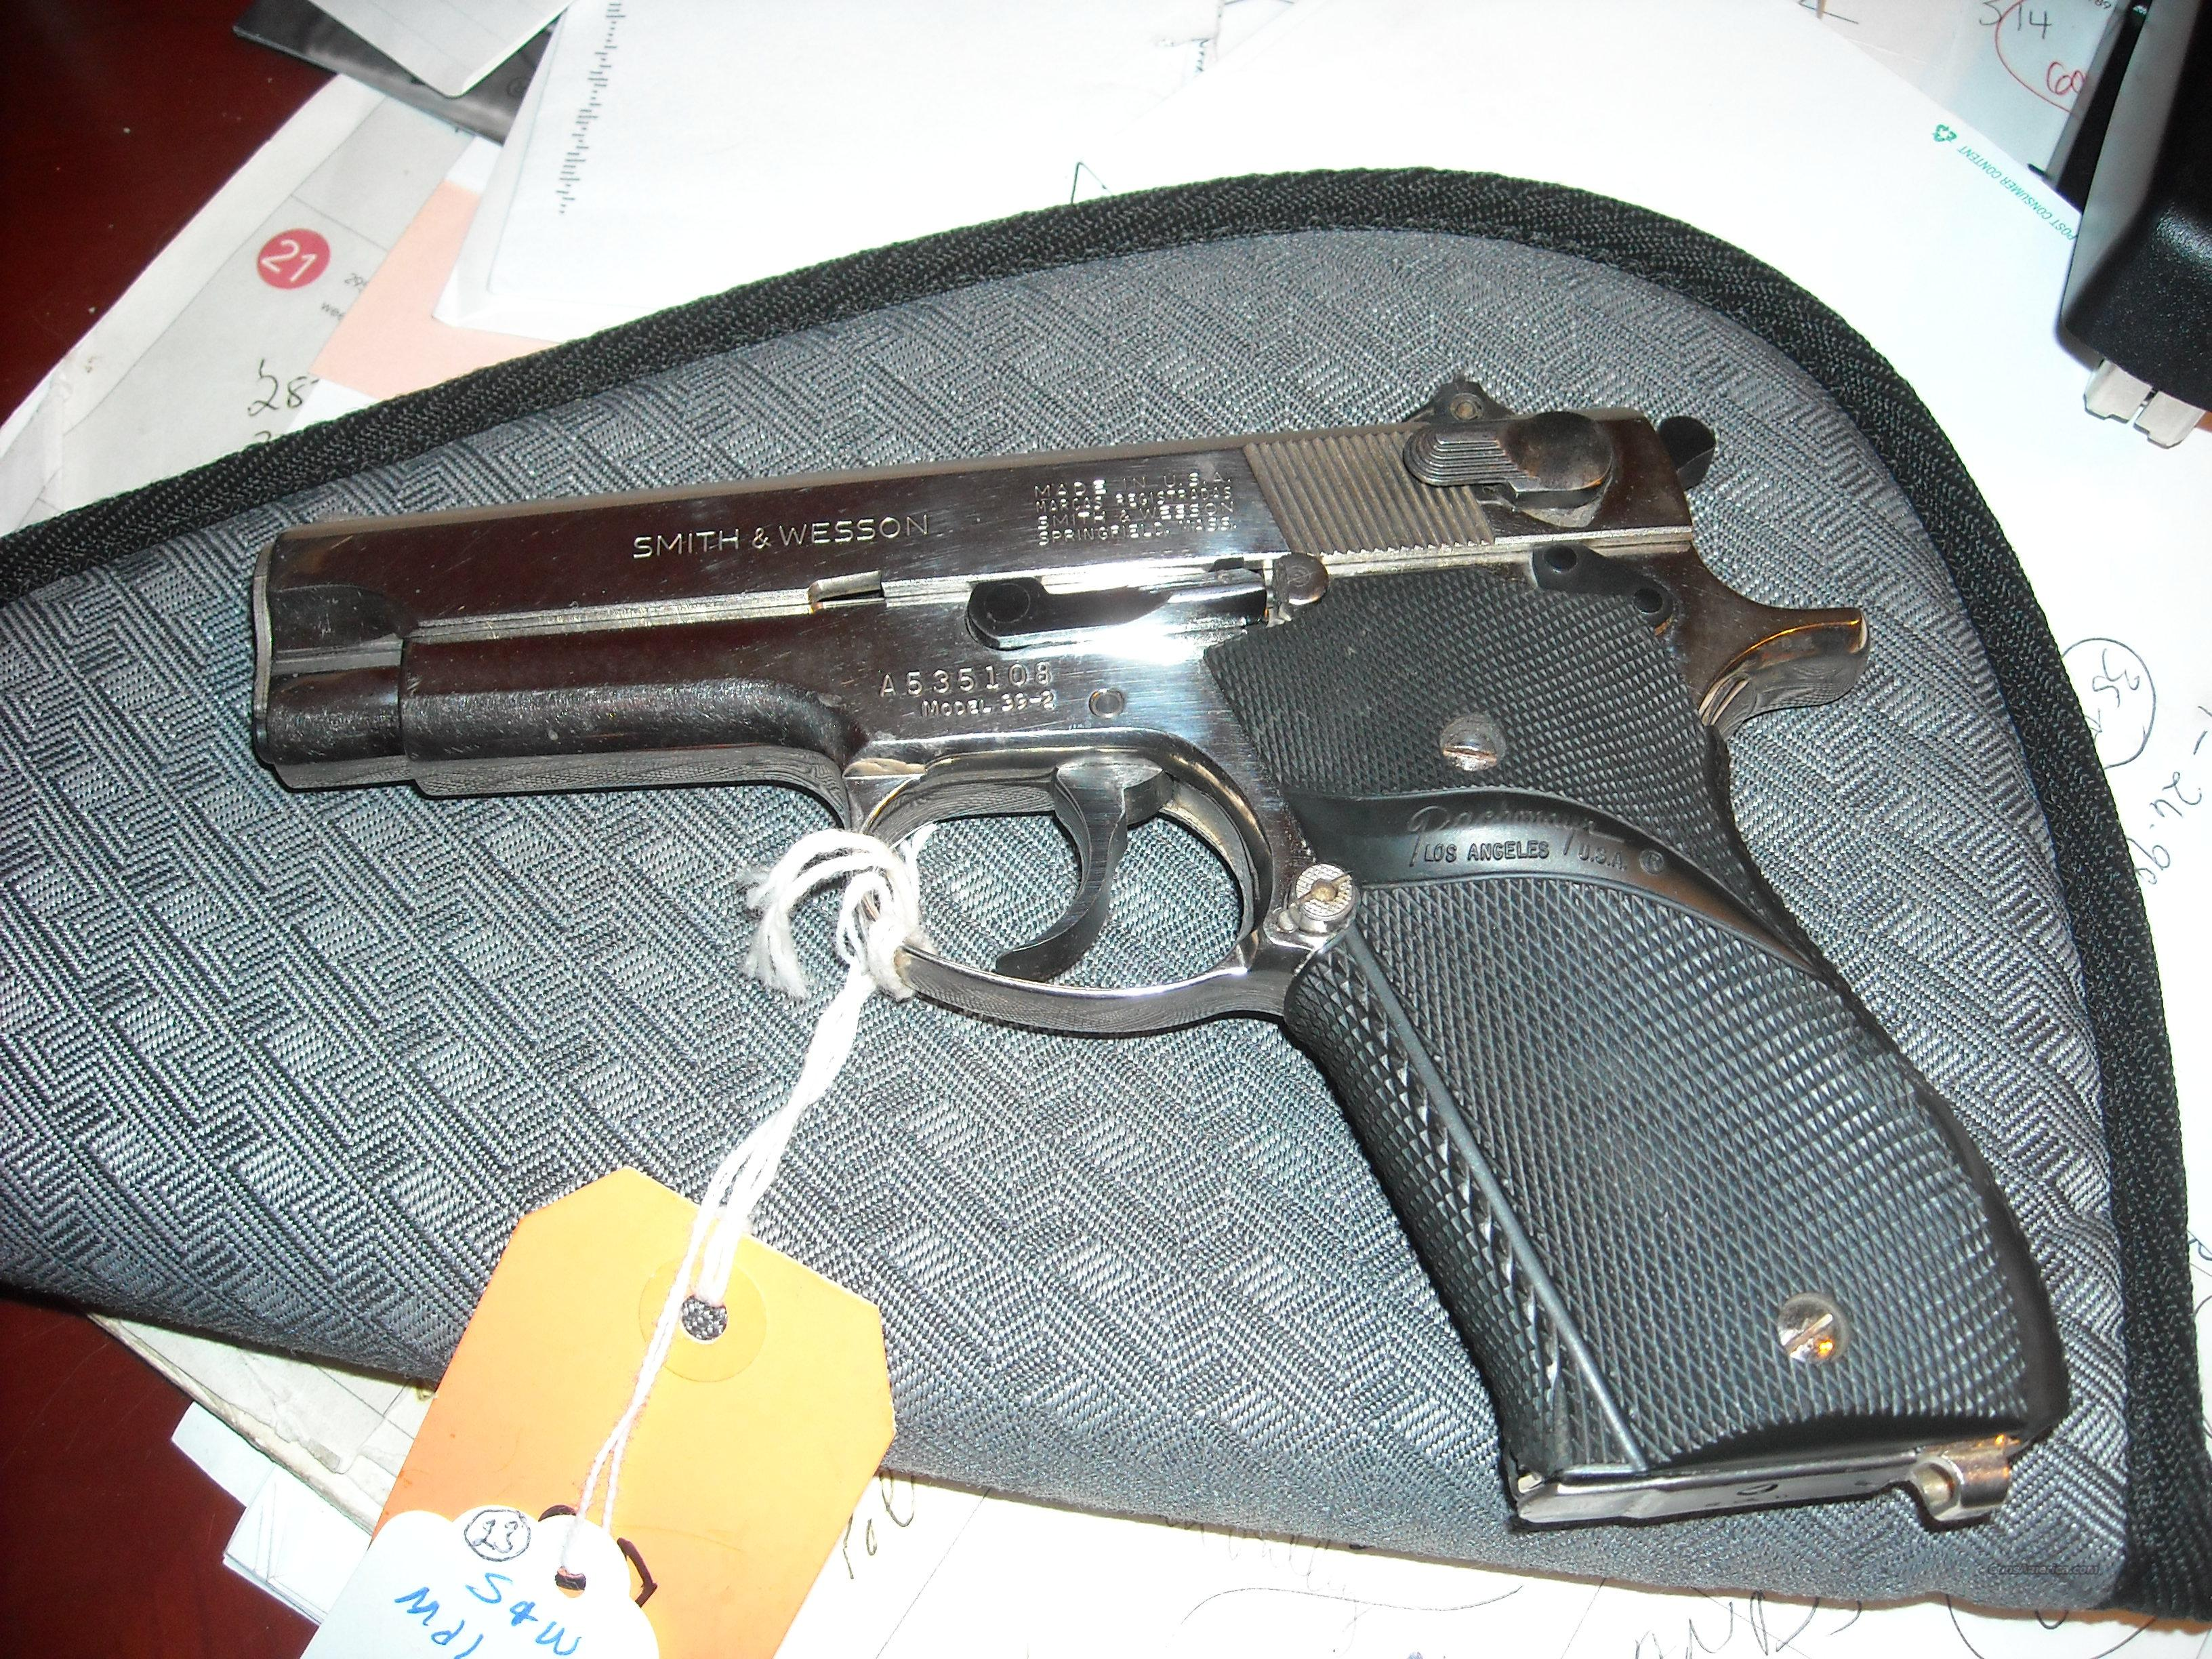 SMITH & WESSON MODEL 39-2 9mm Nickel   Guns > Pistols > Smith & Wesson Pistols - Autos > Steel Frame